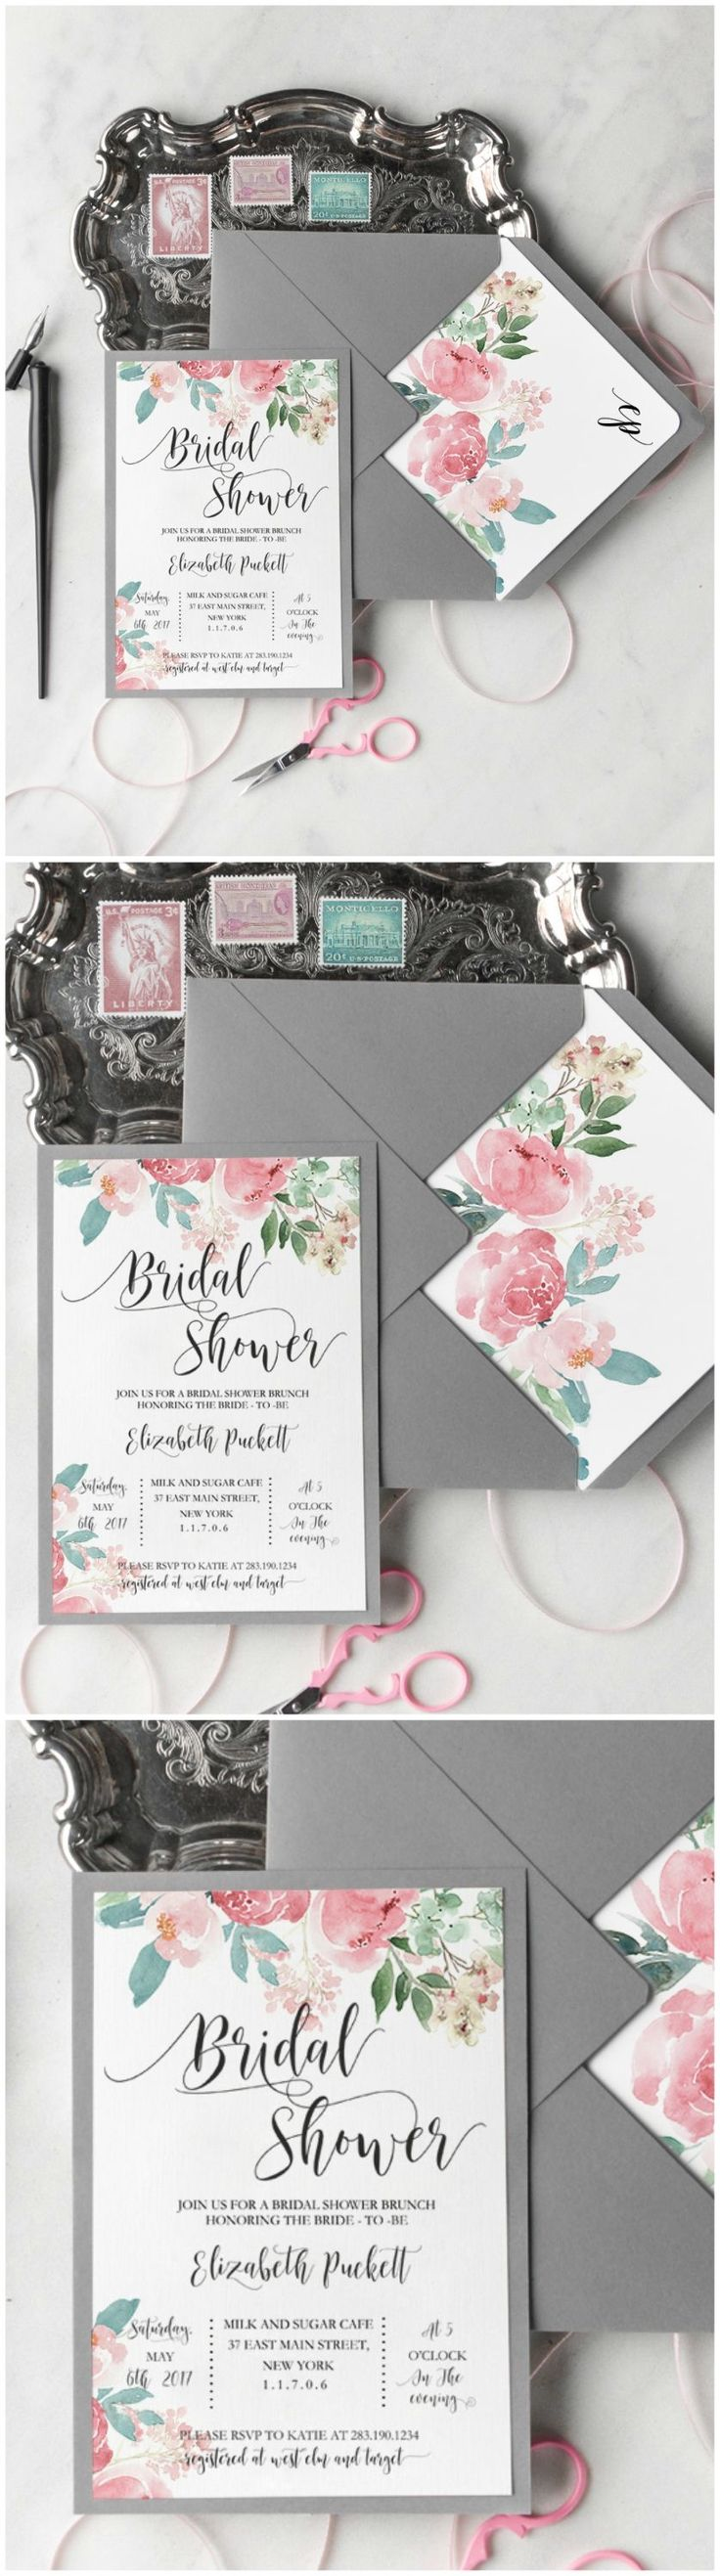 pink black and white bridal shower invitations%0A Invite your best friends for a bridal shower by giving them lovely invites